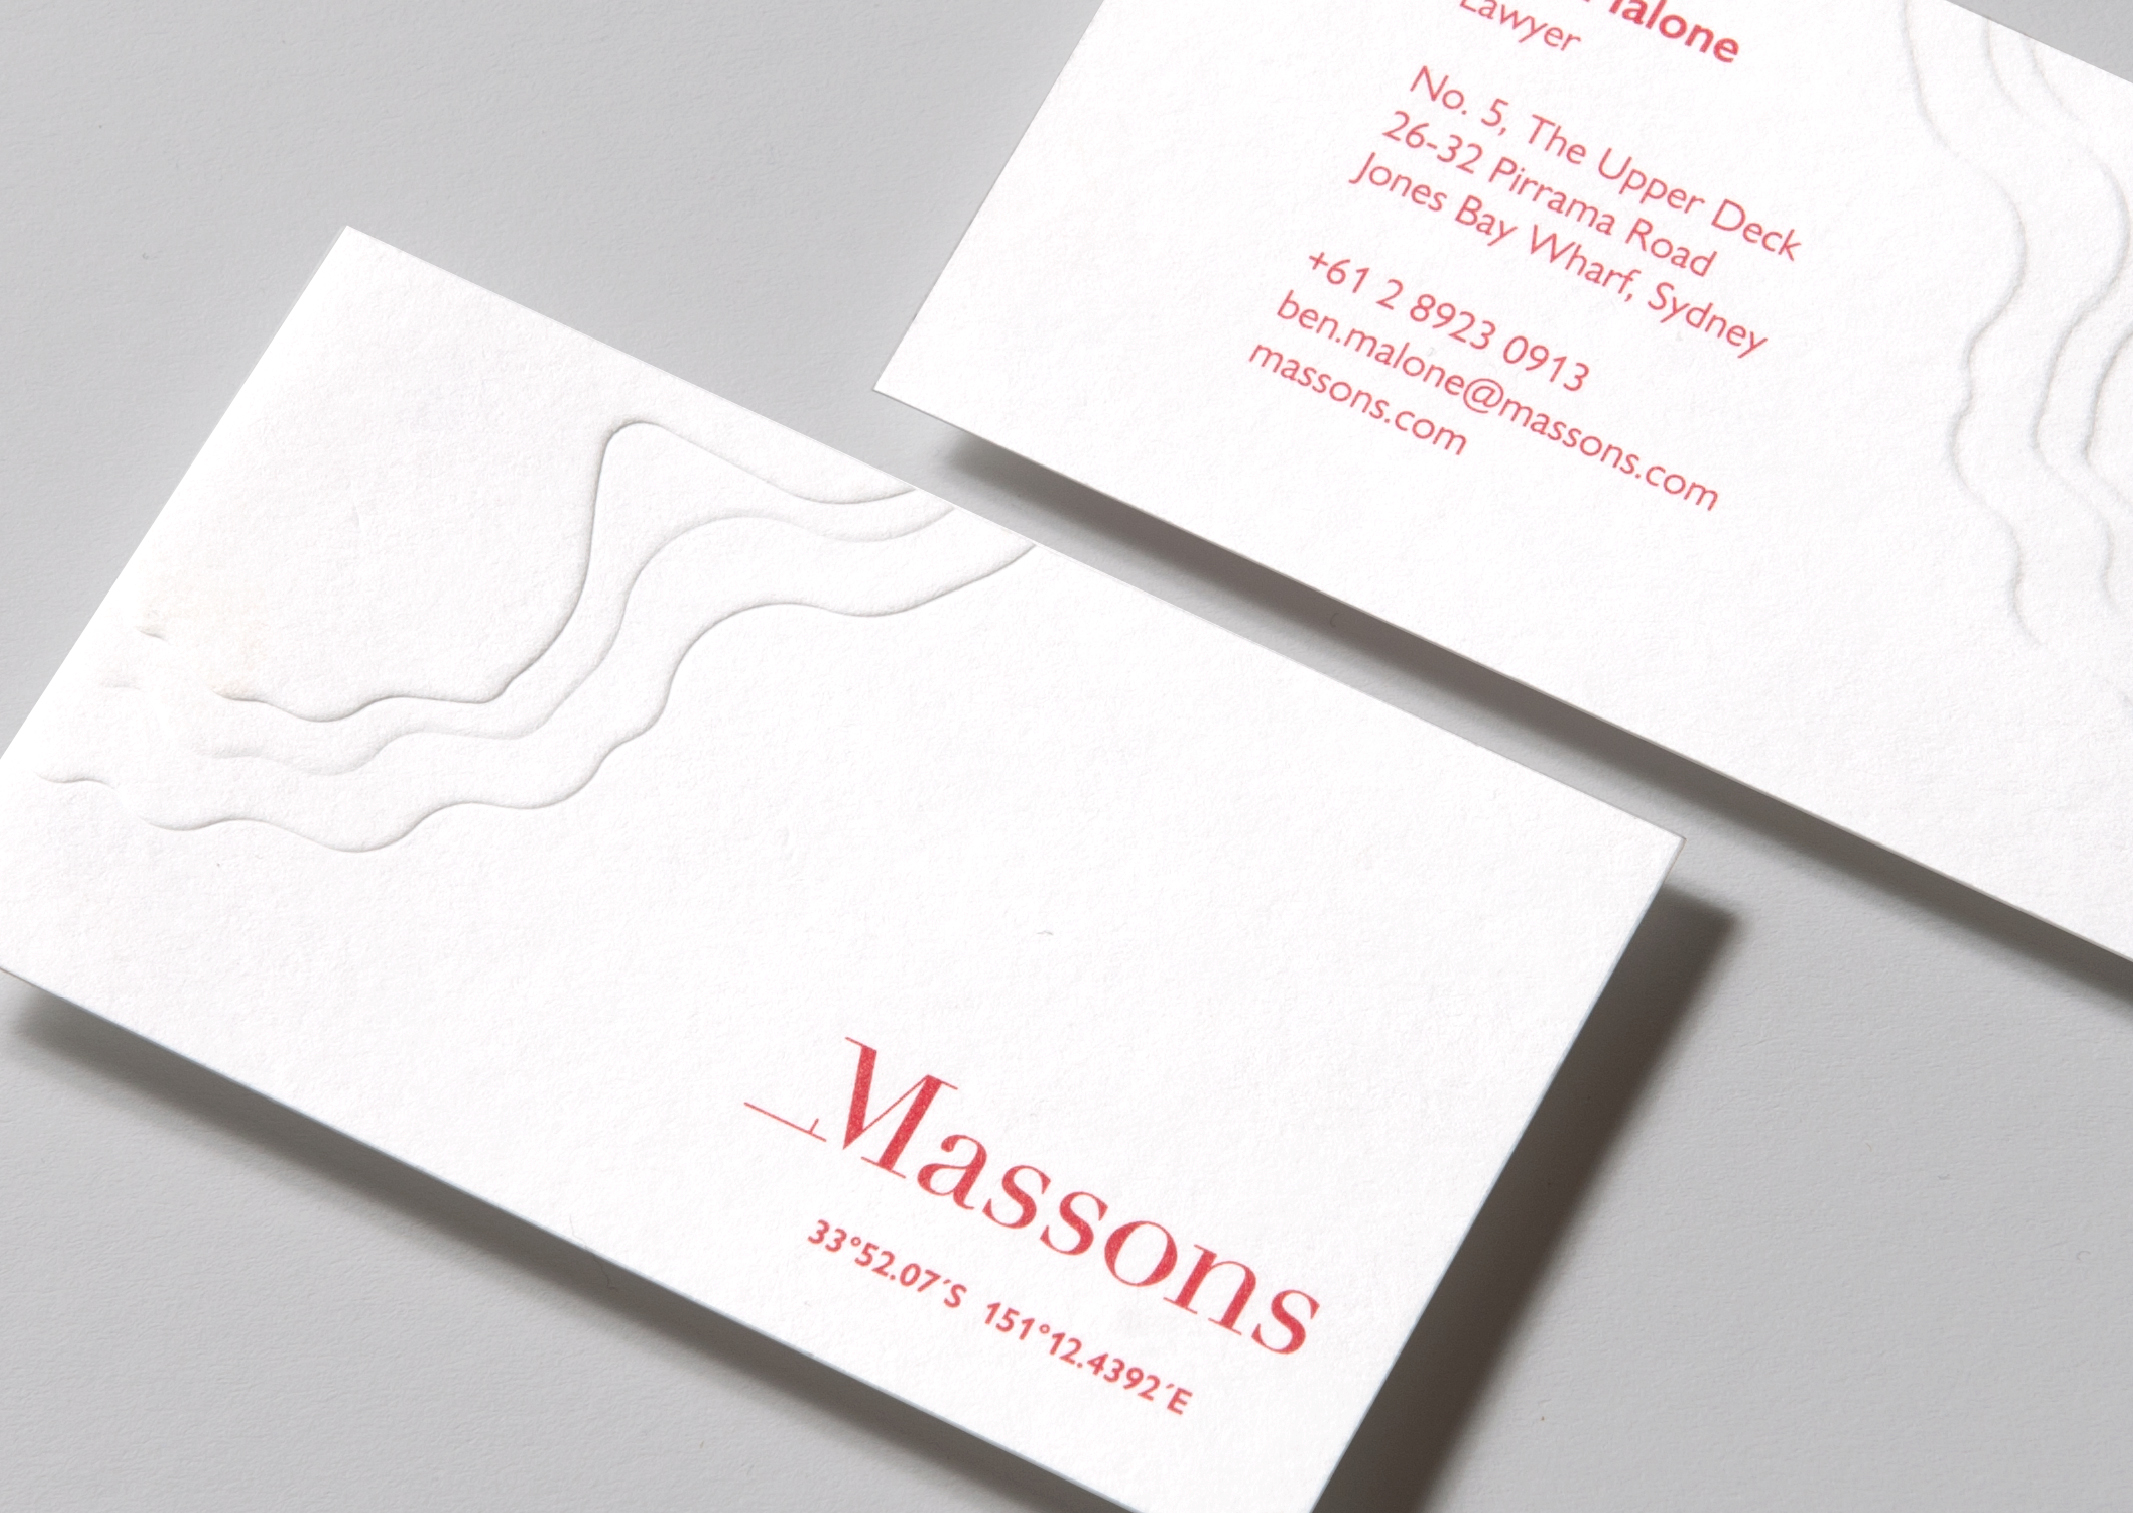 Massons business cards feature a deep topographic map emboss and location coordinates